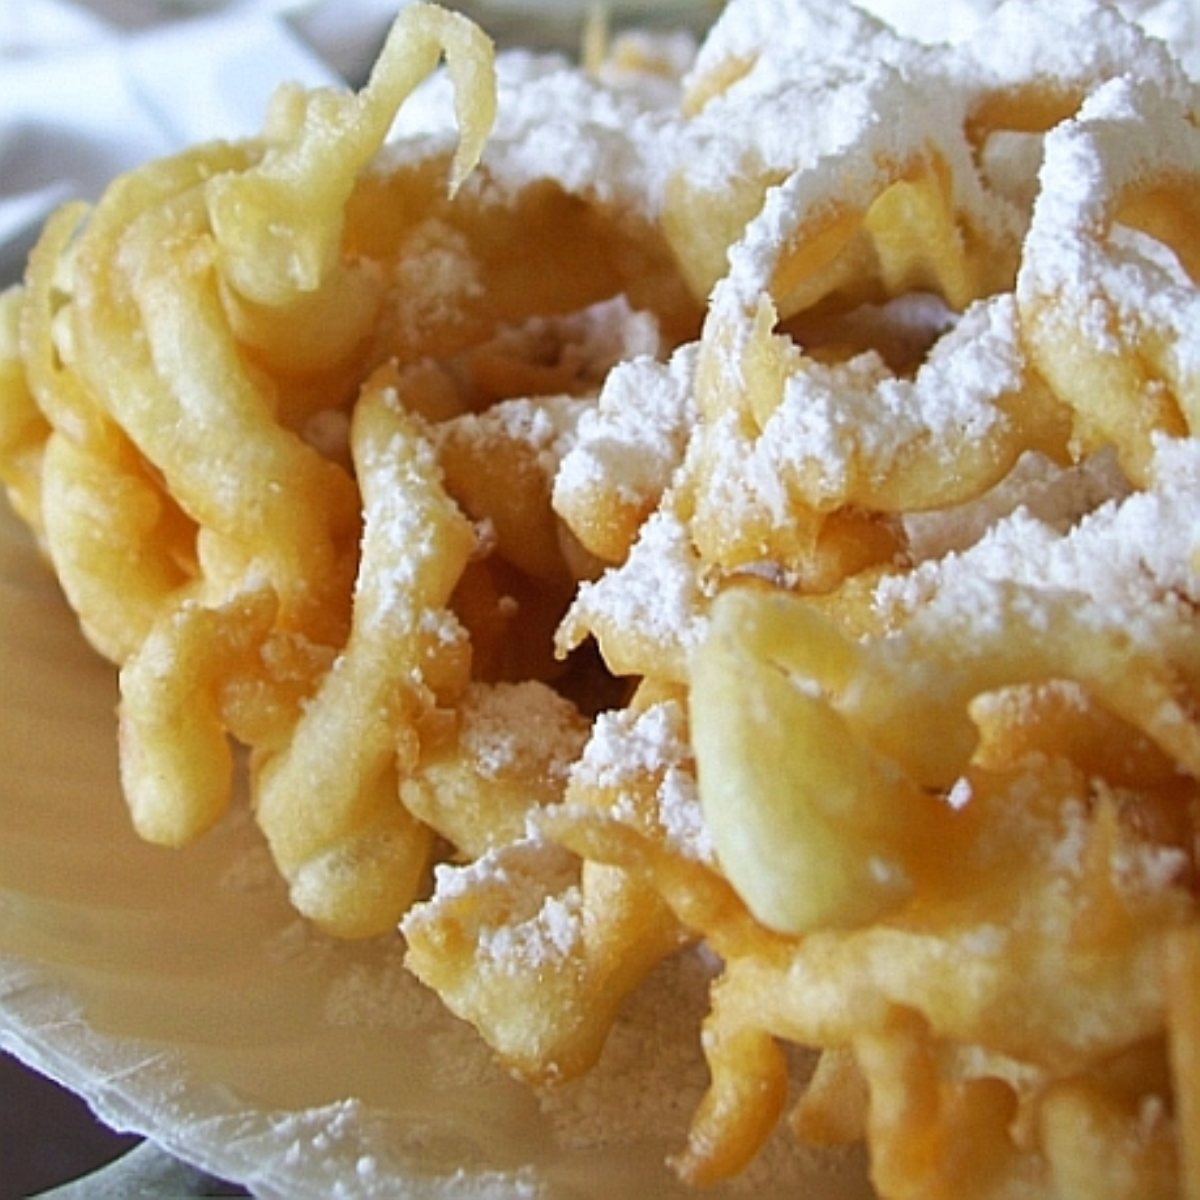 40 Rice Cake Topping Ideas Languageen: Types Of Funnel Cake Toppings